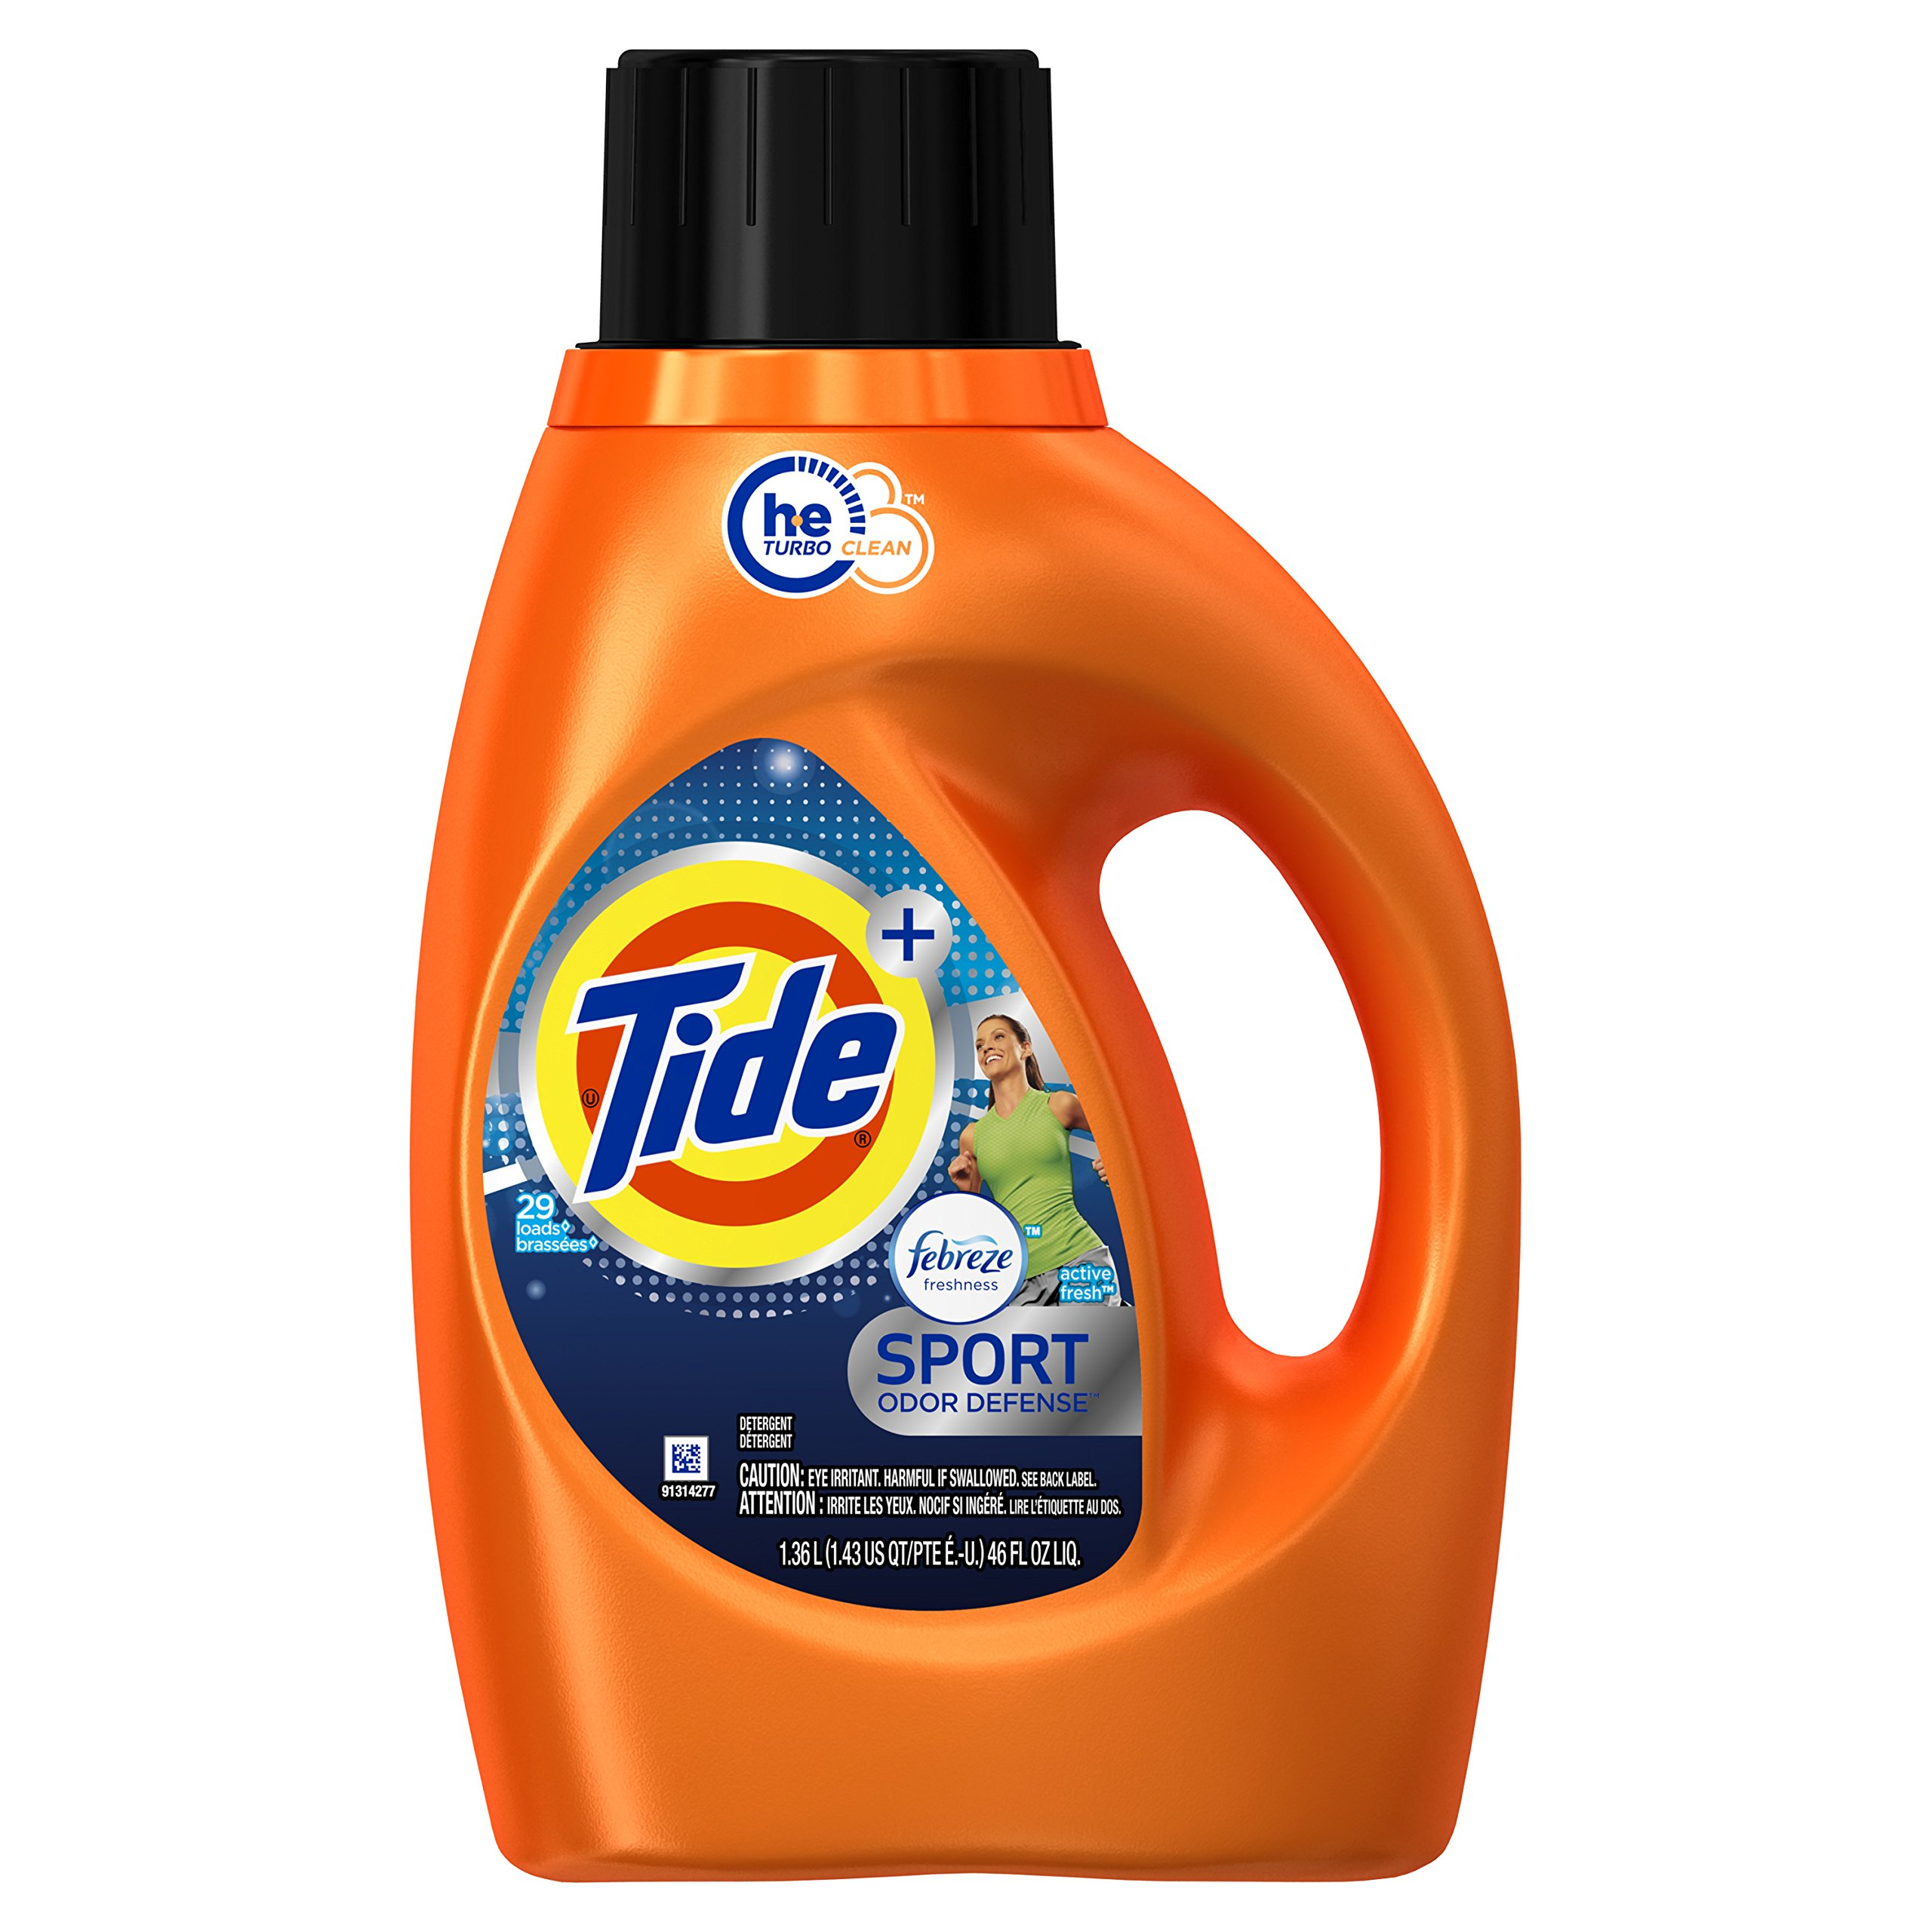 Tide Plus Febreze Fresh Sport Odor Defense HE Turbo Clean Liquid Laundry Detergent, Active Fresh Scent, 1. 36L (29 Loads) - Packaging May Vary